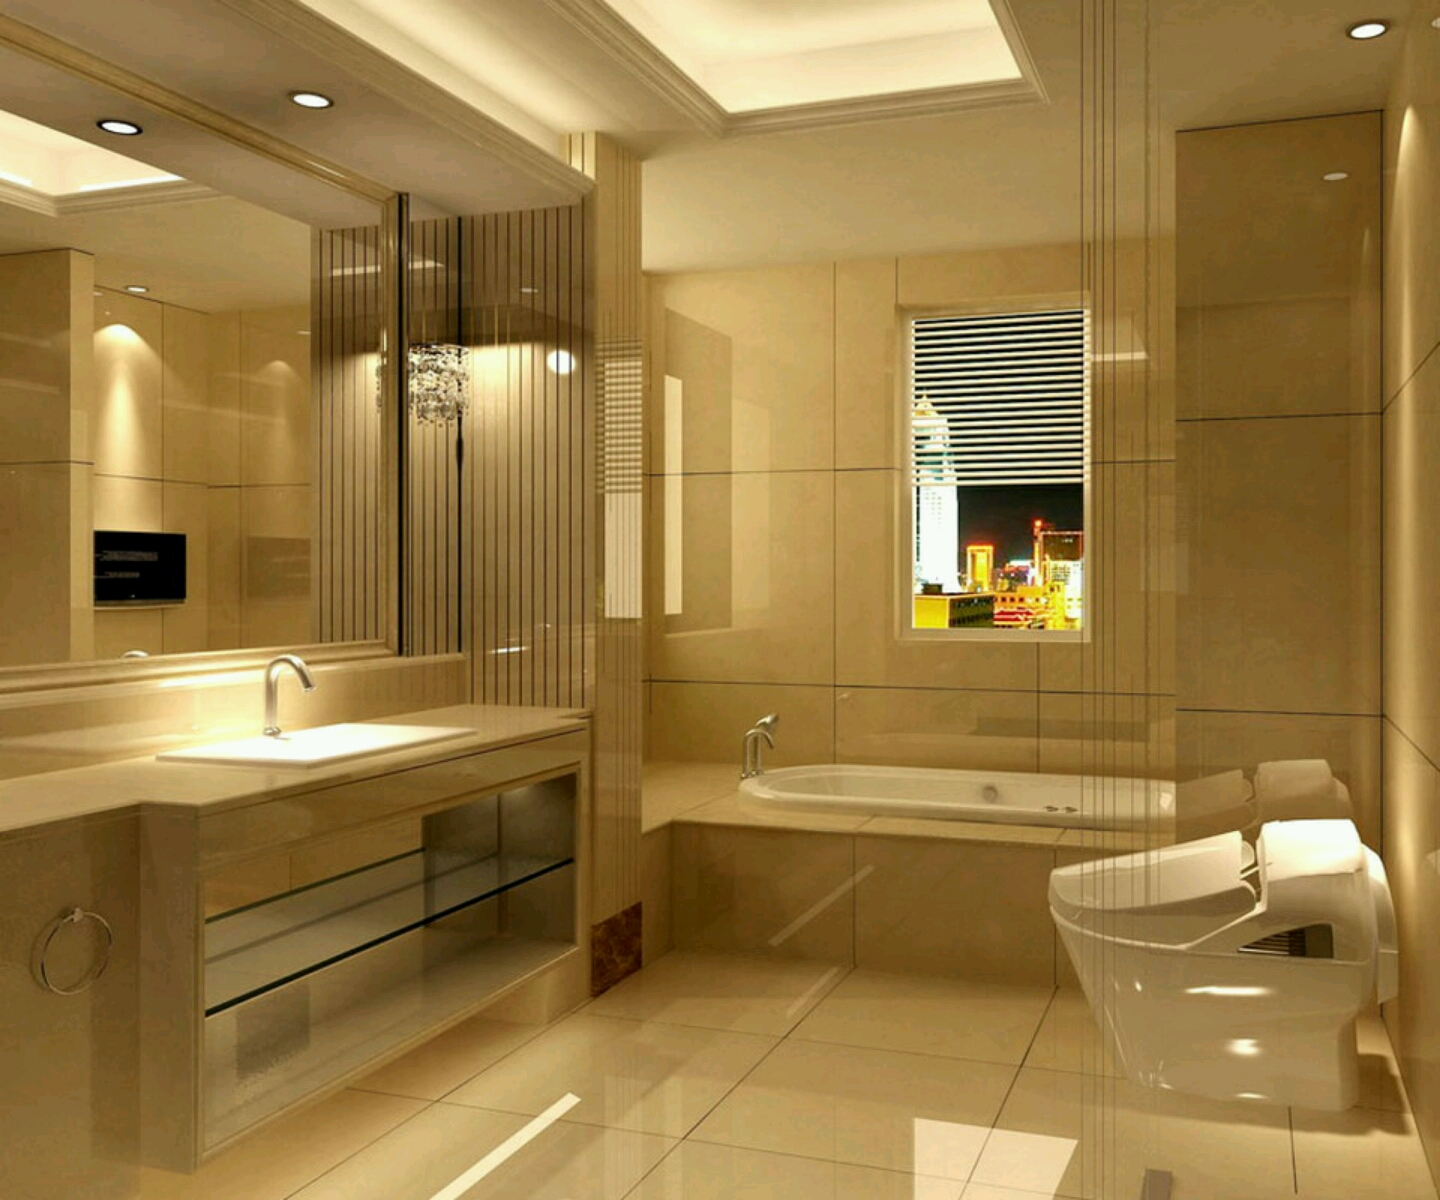 Modern bathrooms setting ideas furniture gallery for New bathroom design